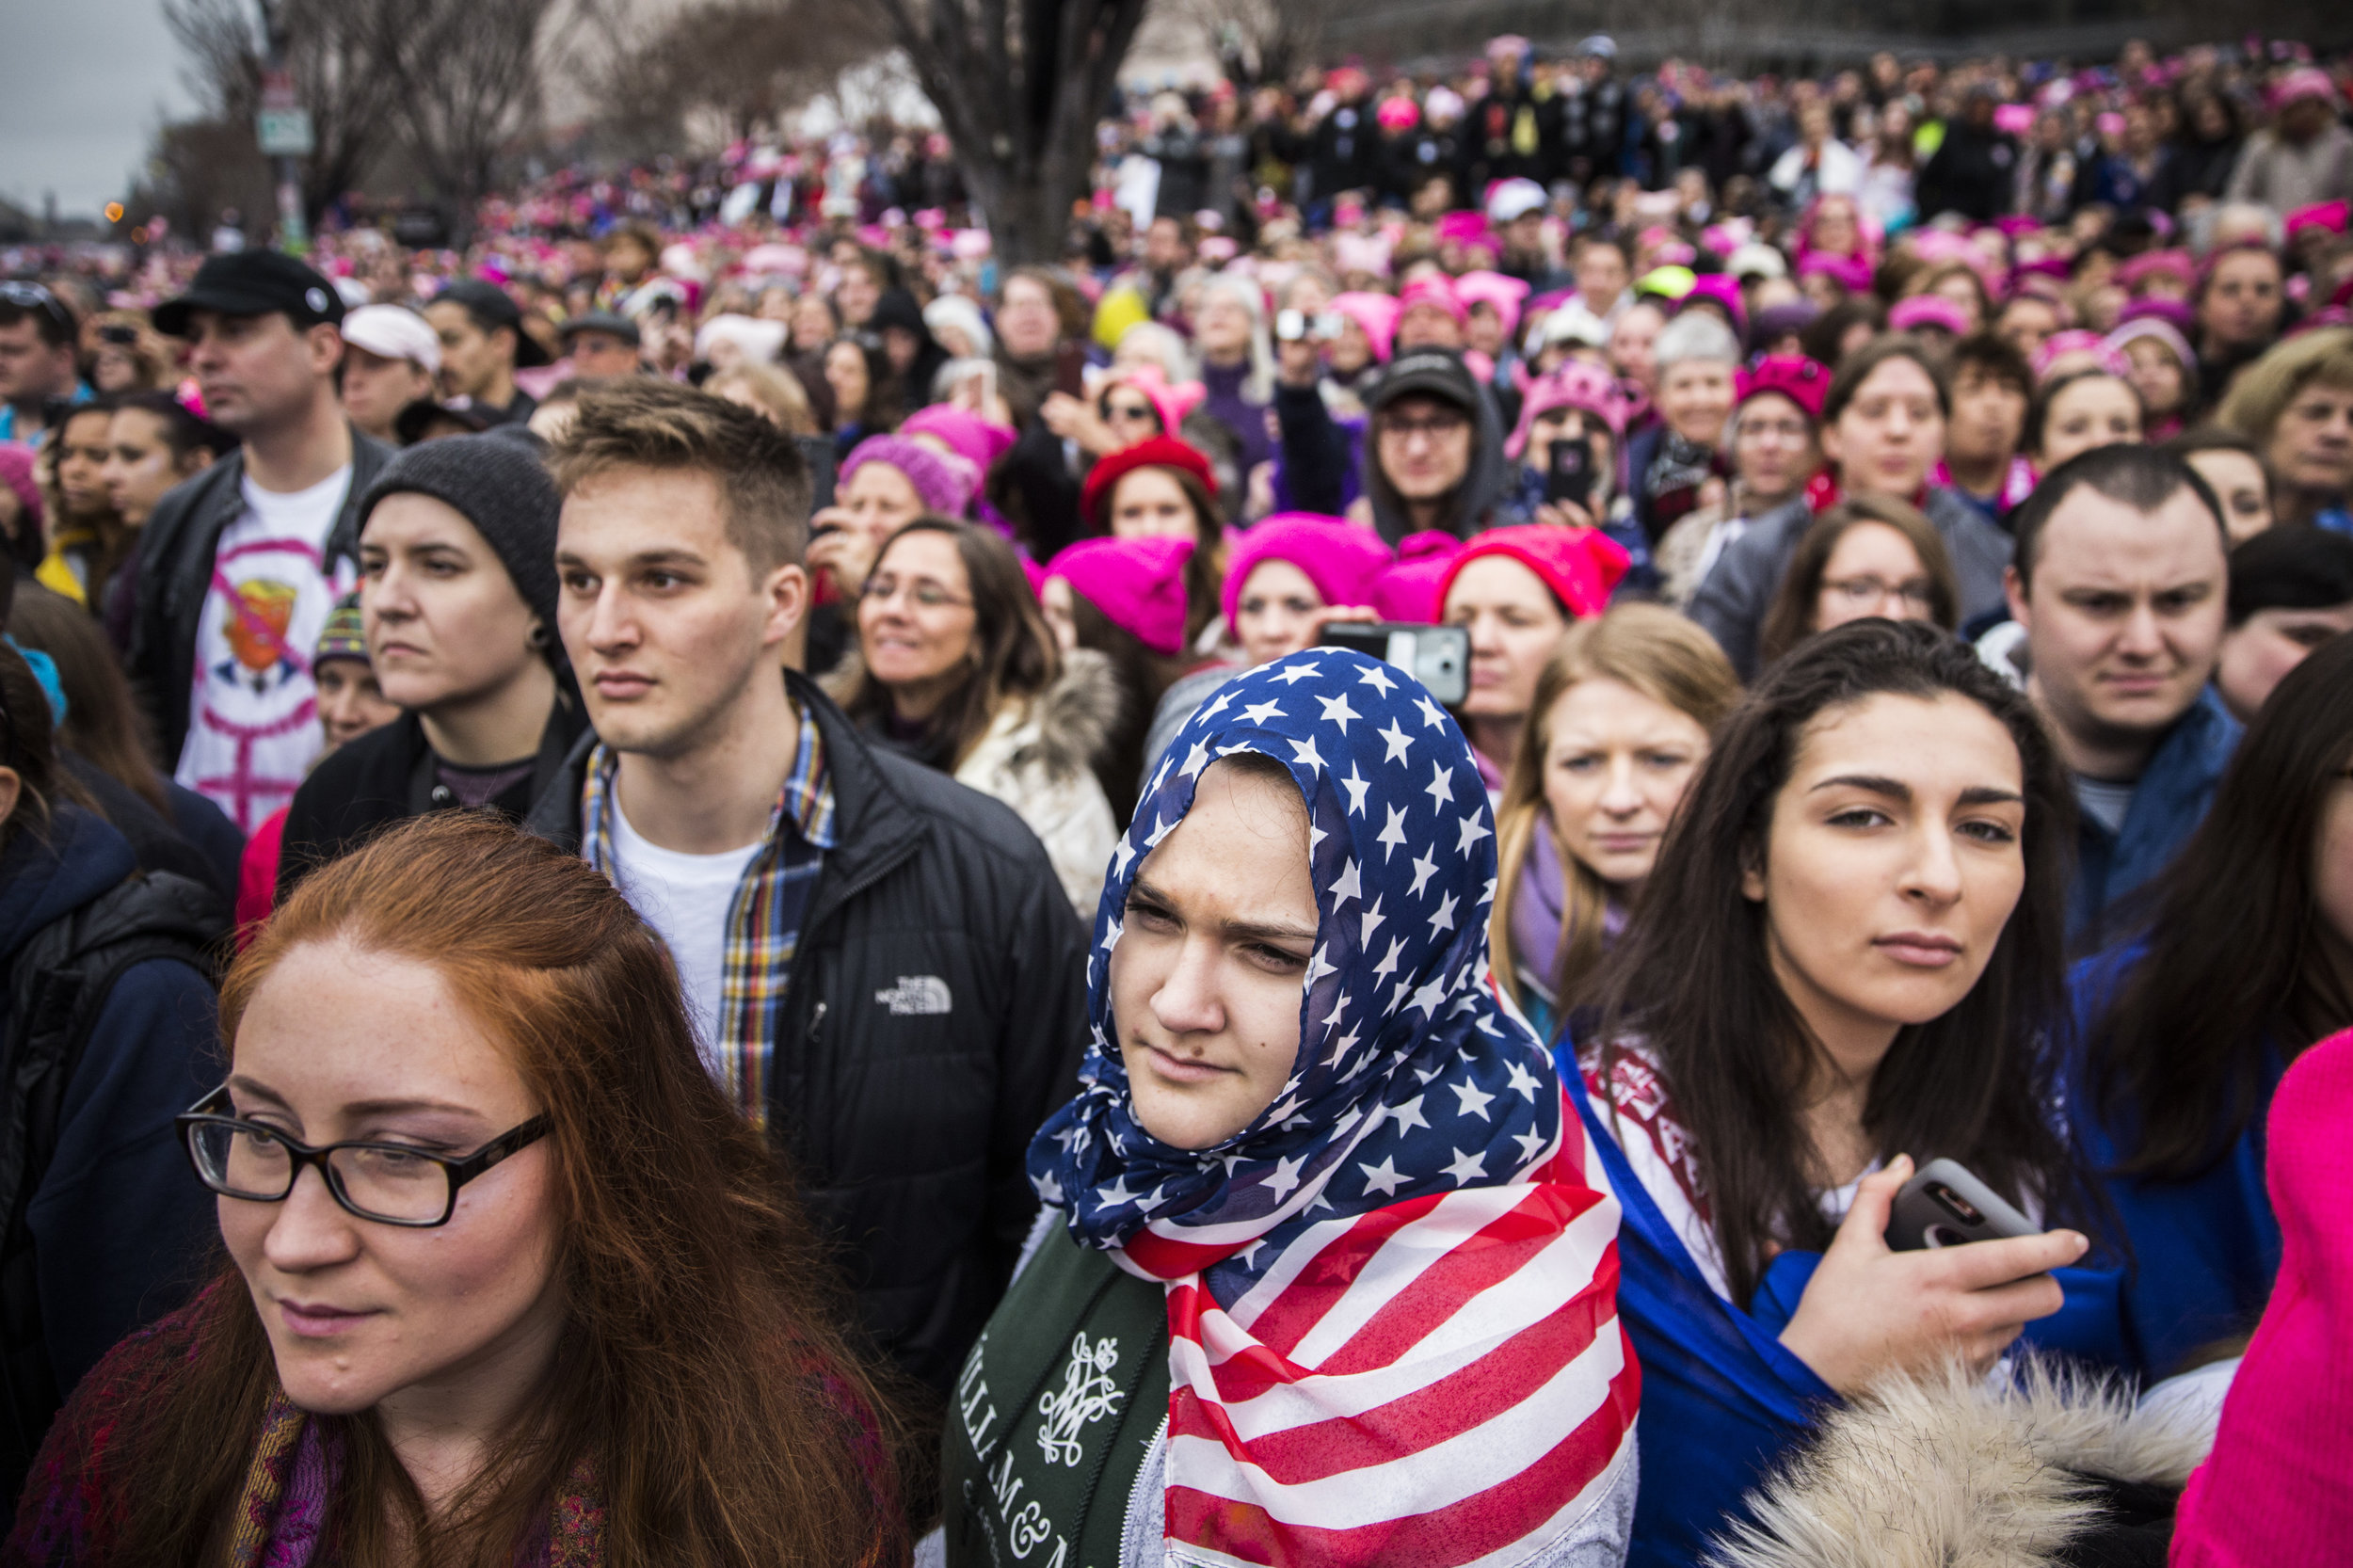 A protester wearing an American flag as a hijab stands amidst the crowd at Women's March on Washington